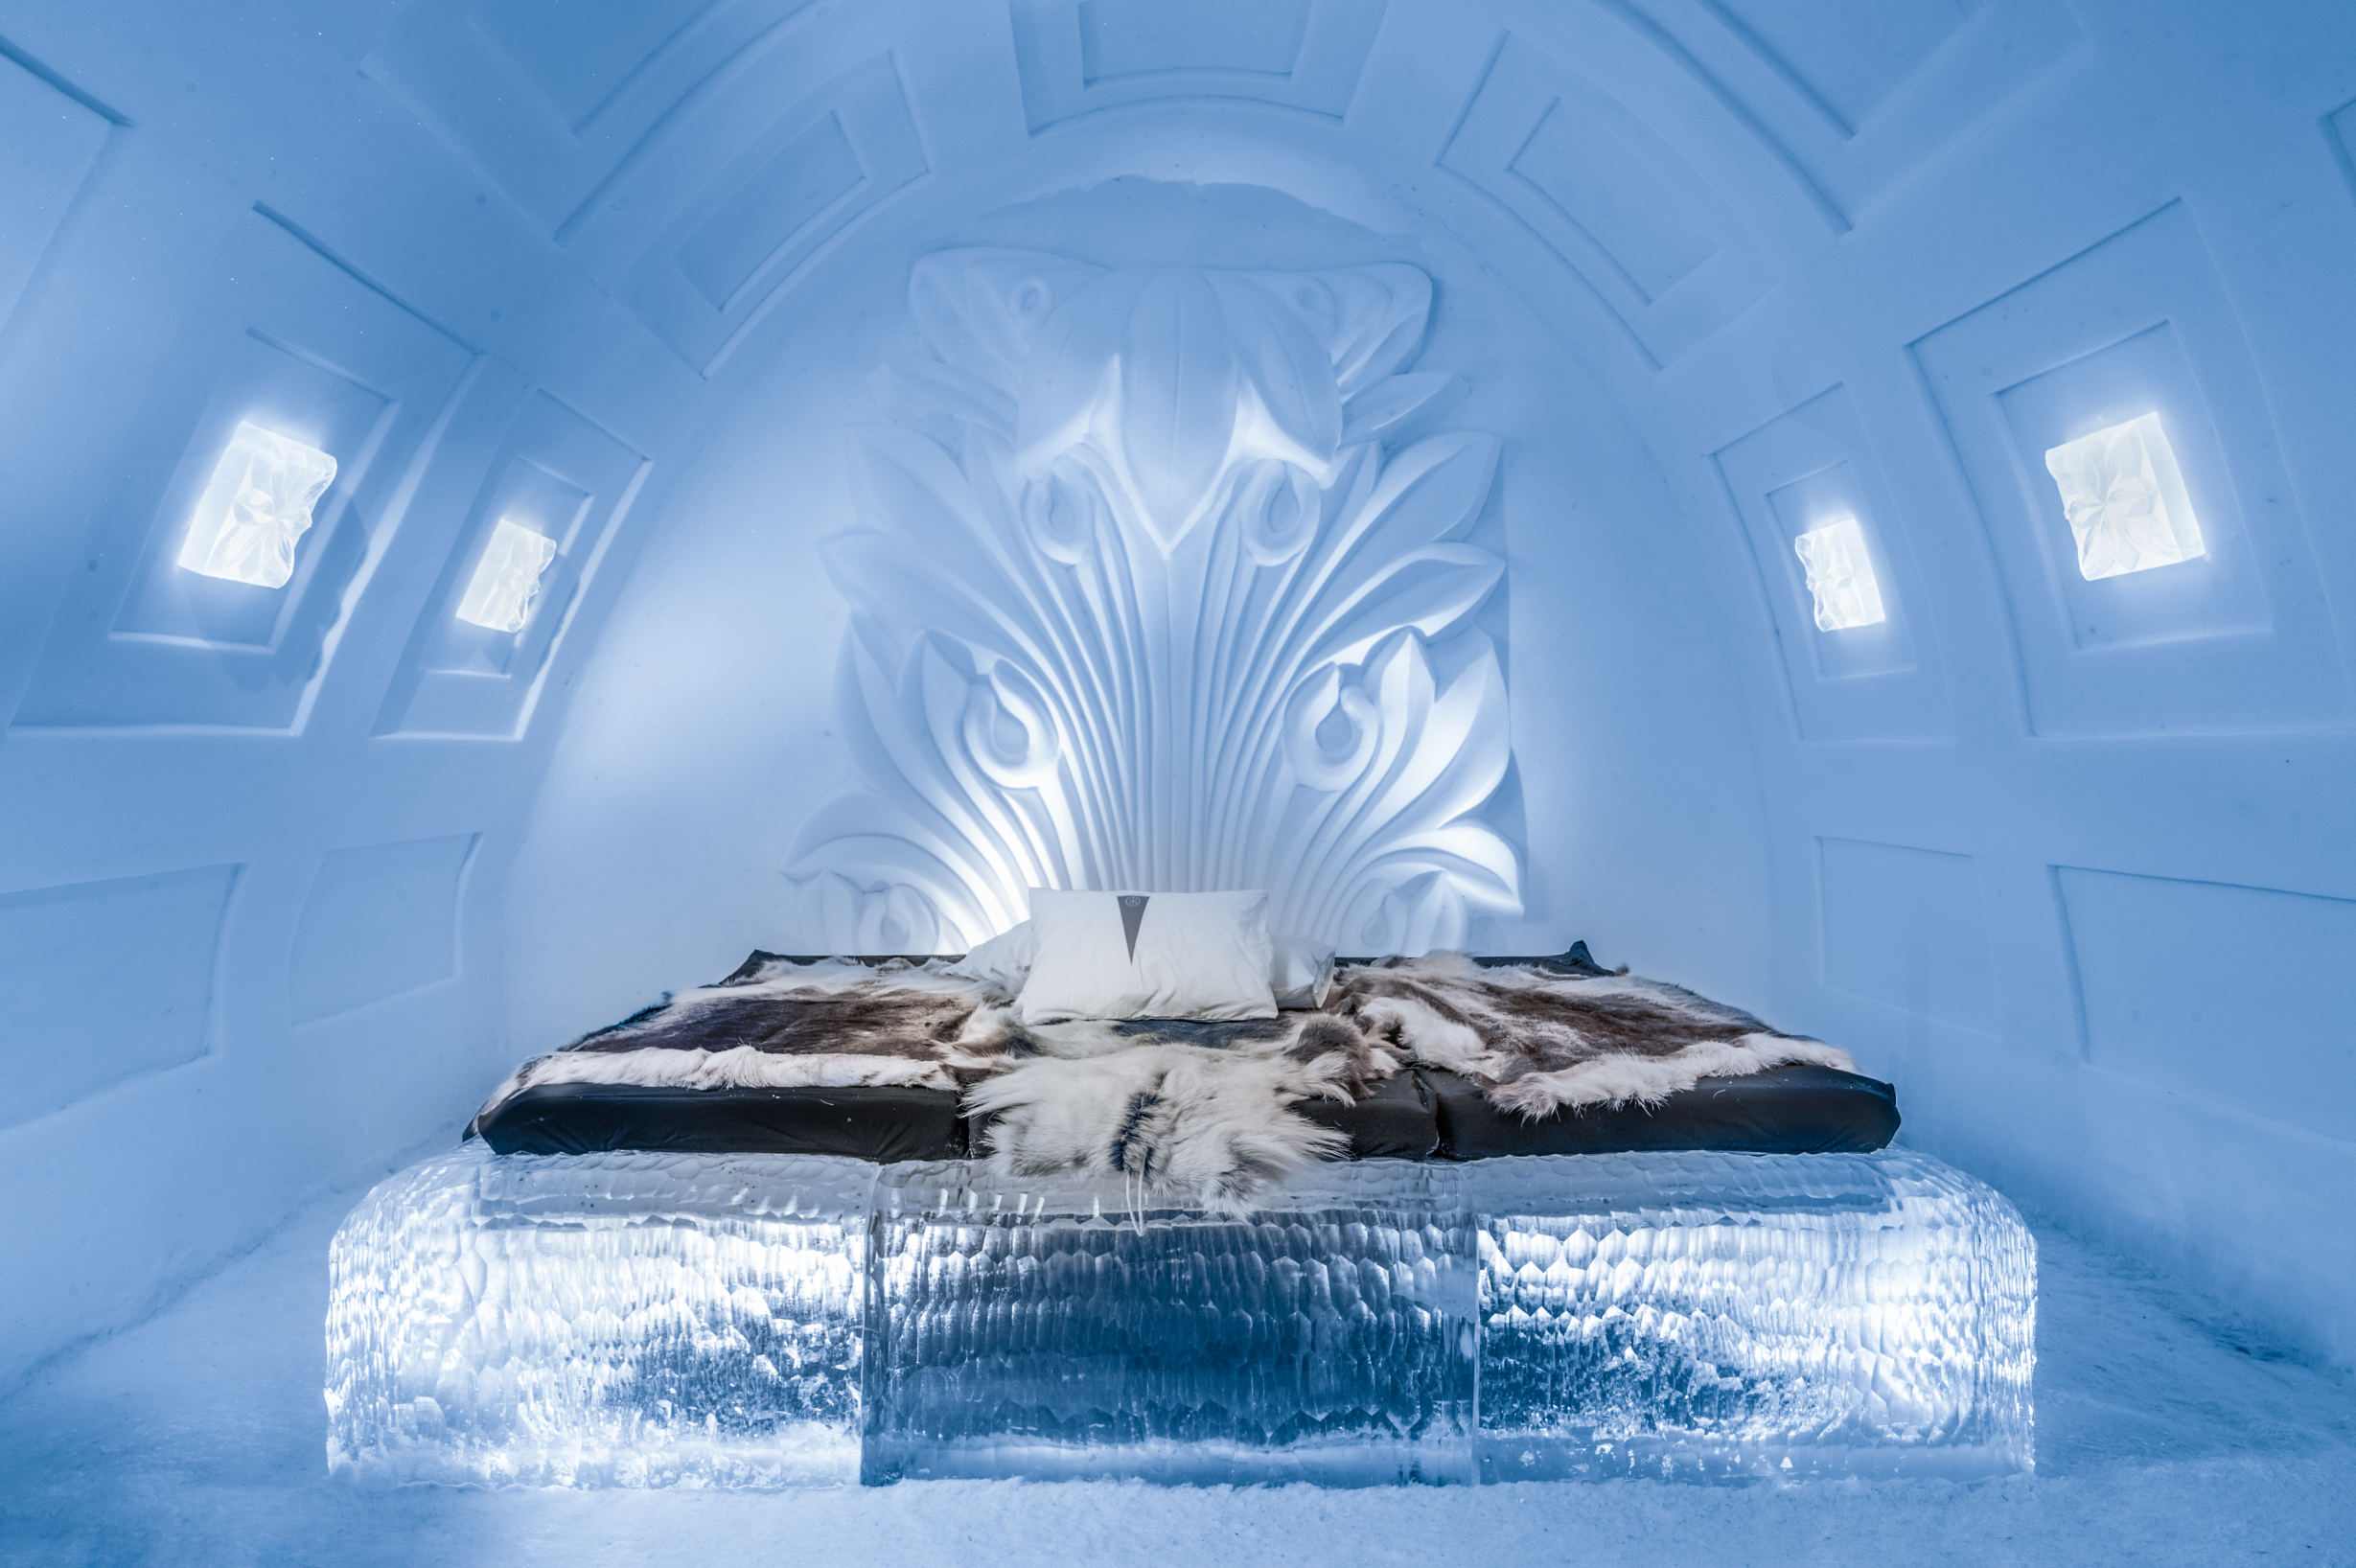 2017 / 2018 ice hotel on sale now! - ice hotel, sweden